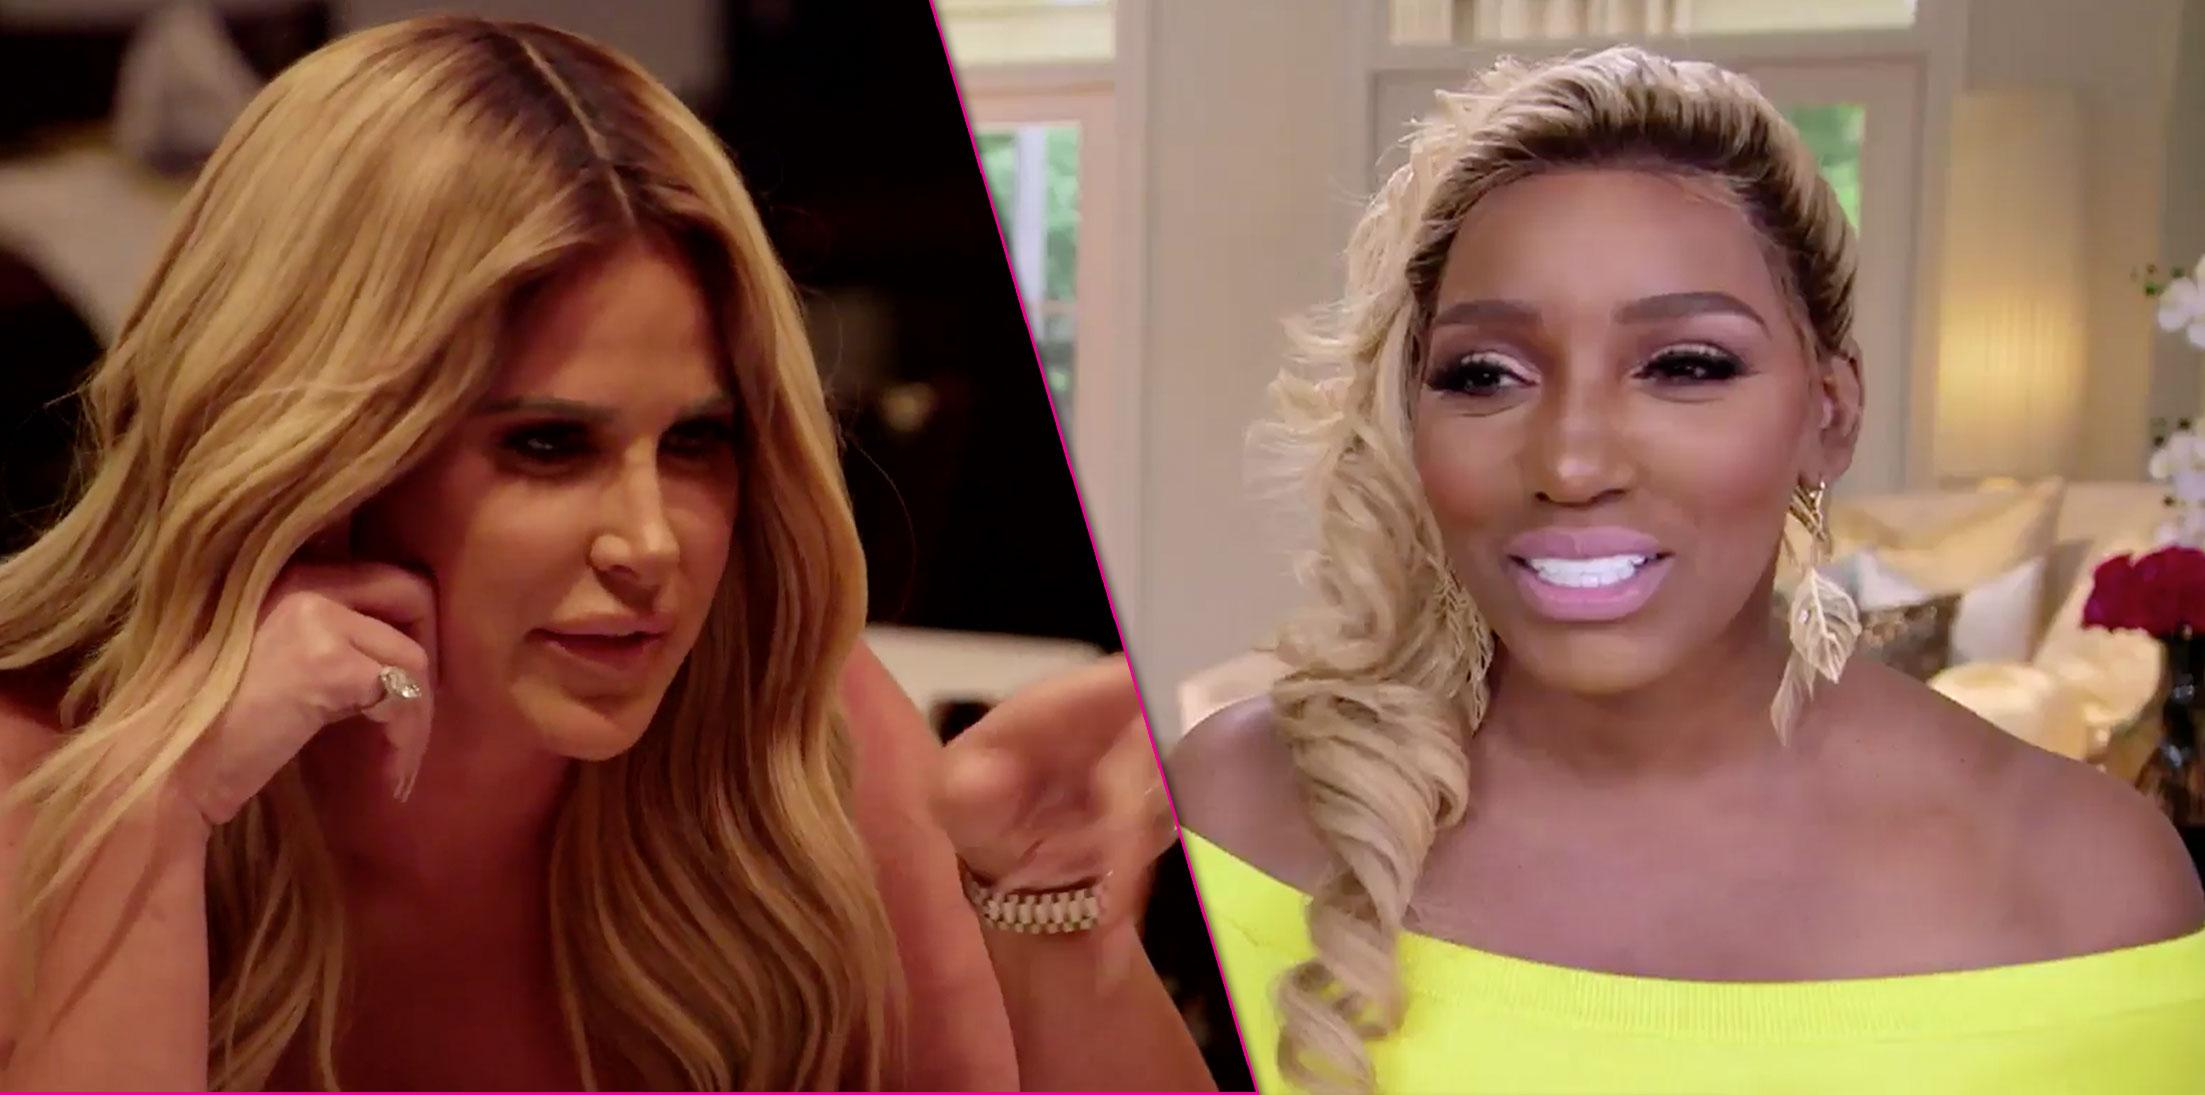 rhoa season 10 trailer nene leakes kim zolciak biermann long